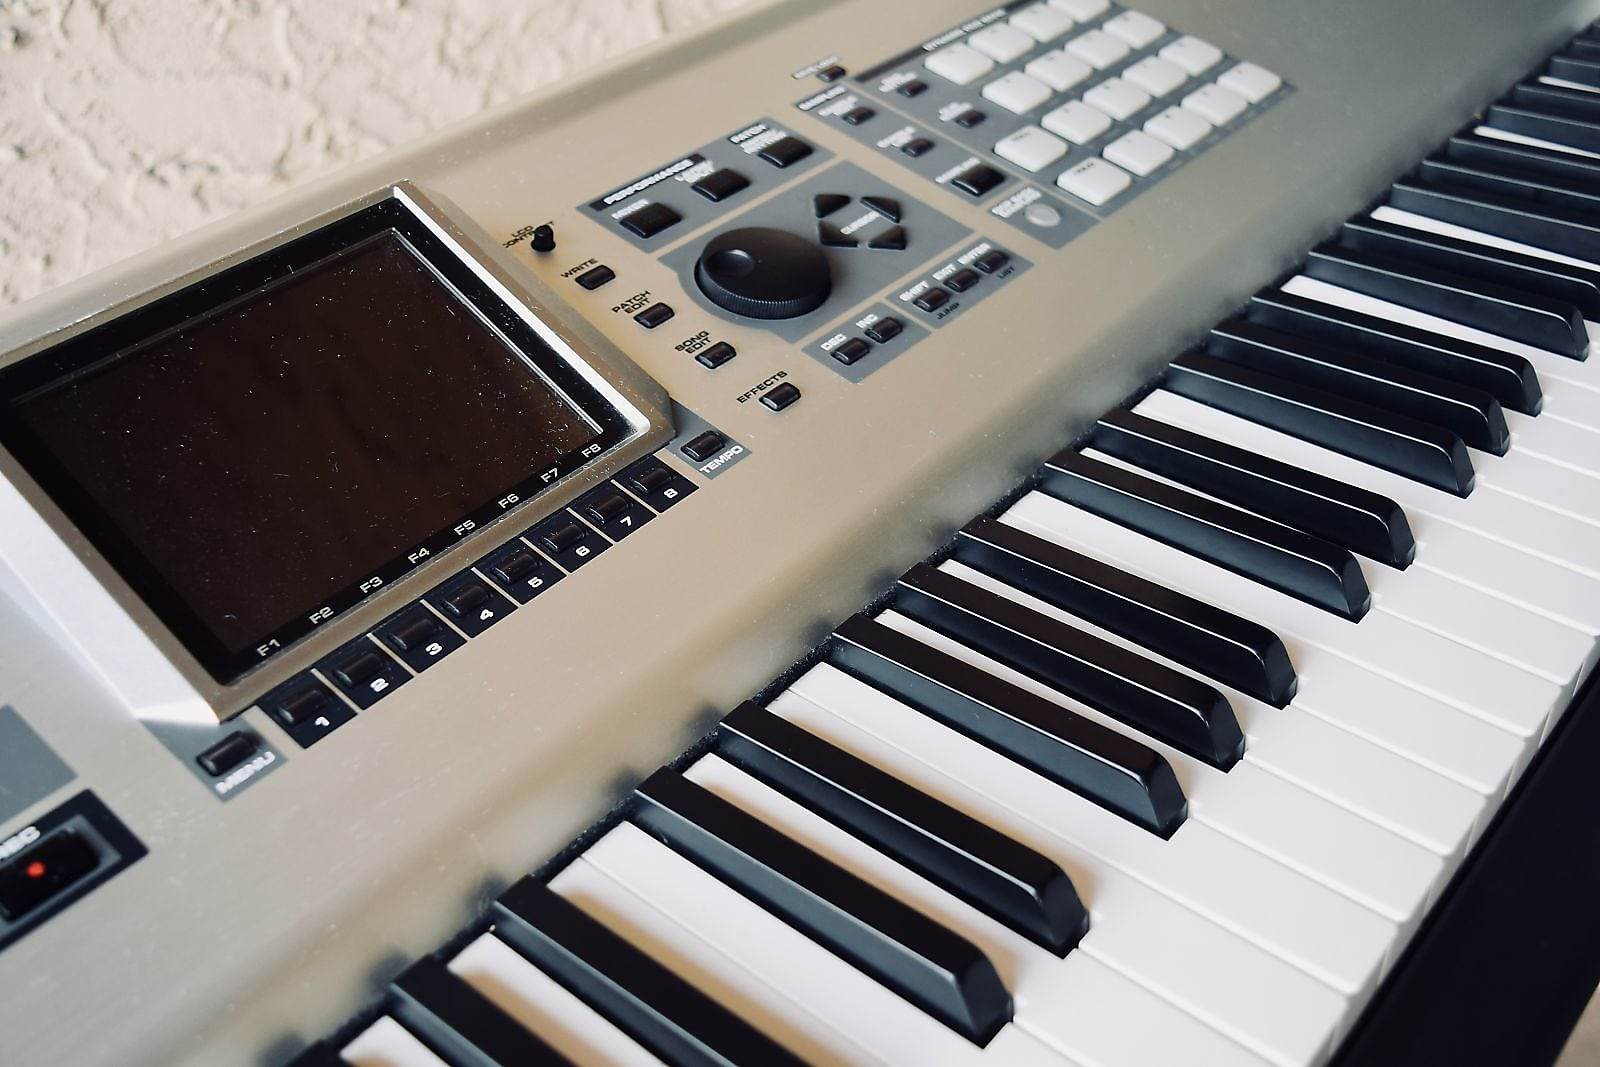 roland fantom x8 88 key piano keyboard synthesizer near mint synth for sale. Black Bedroom Furniture Sets. Home Design Ideas